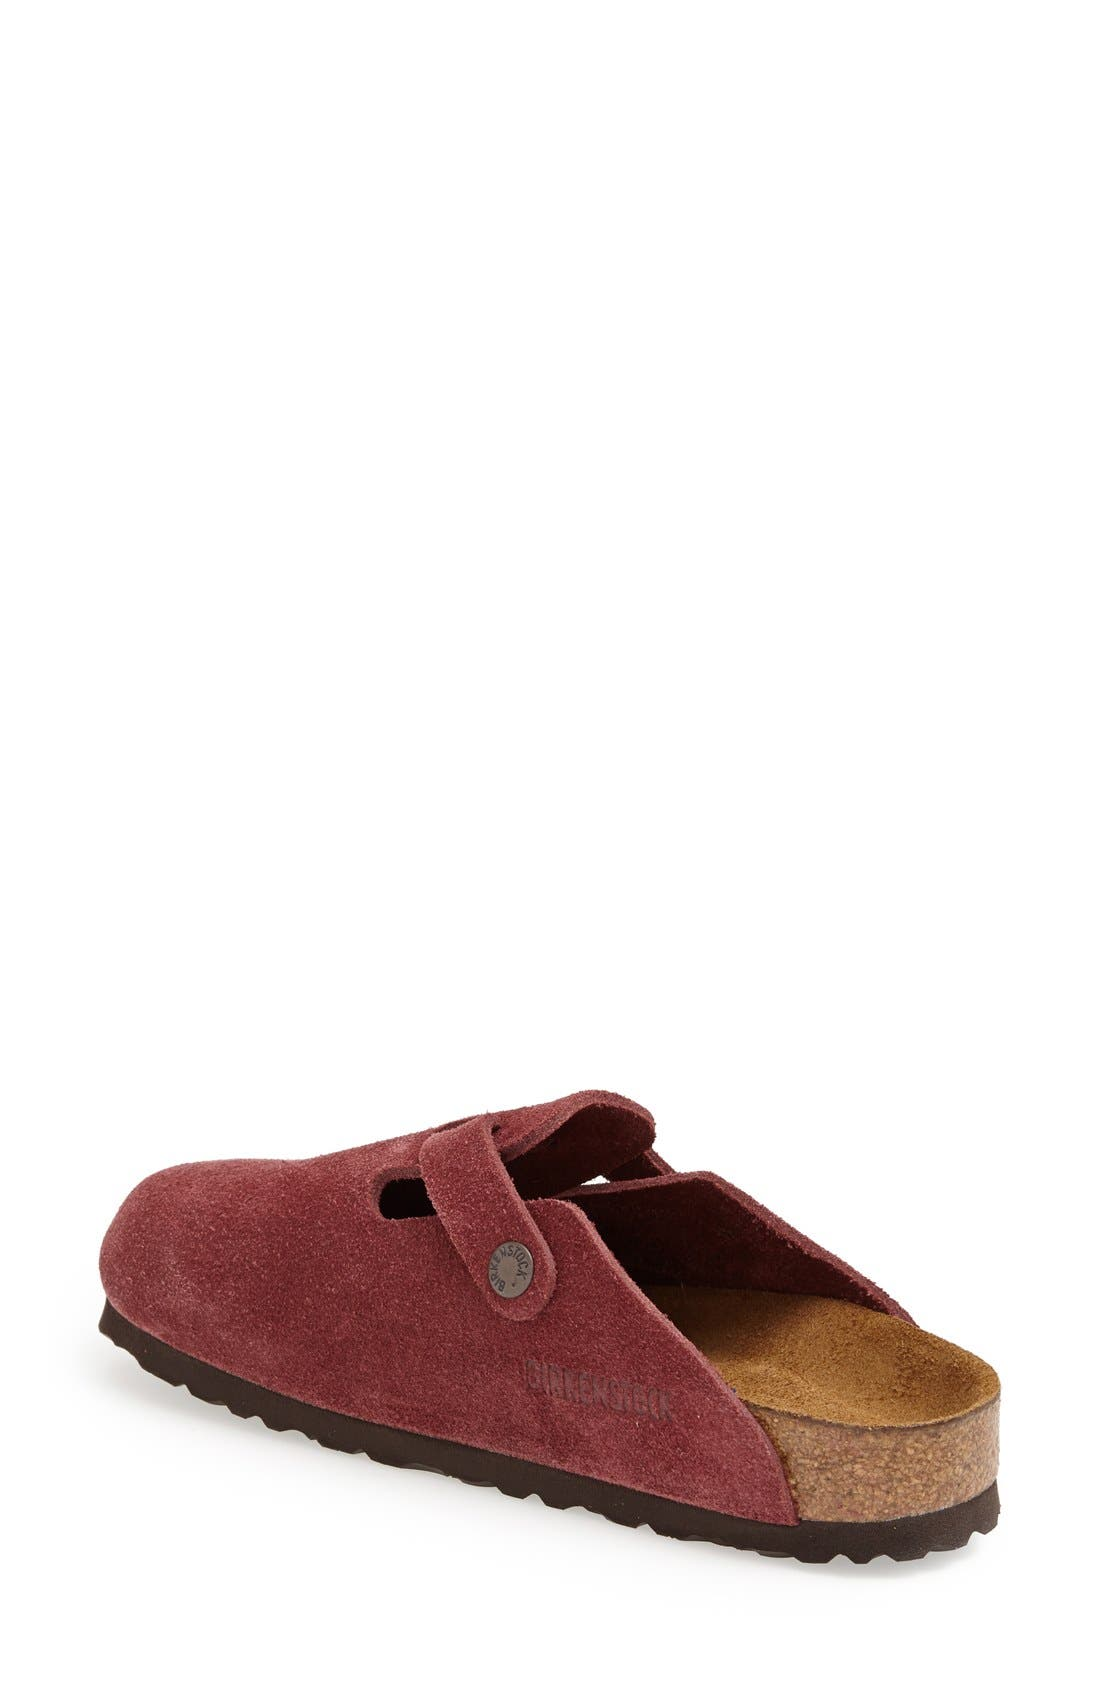 'Boston' Classic Oiled Leather Clog,                             Alternate thumbnail 24, color,